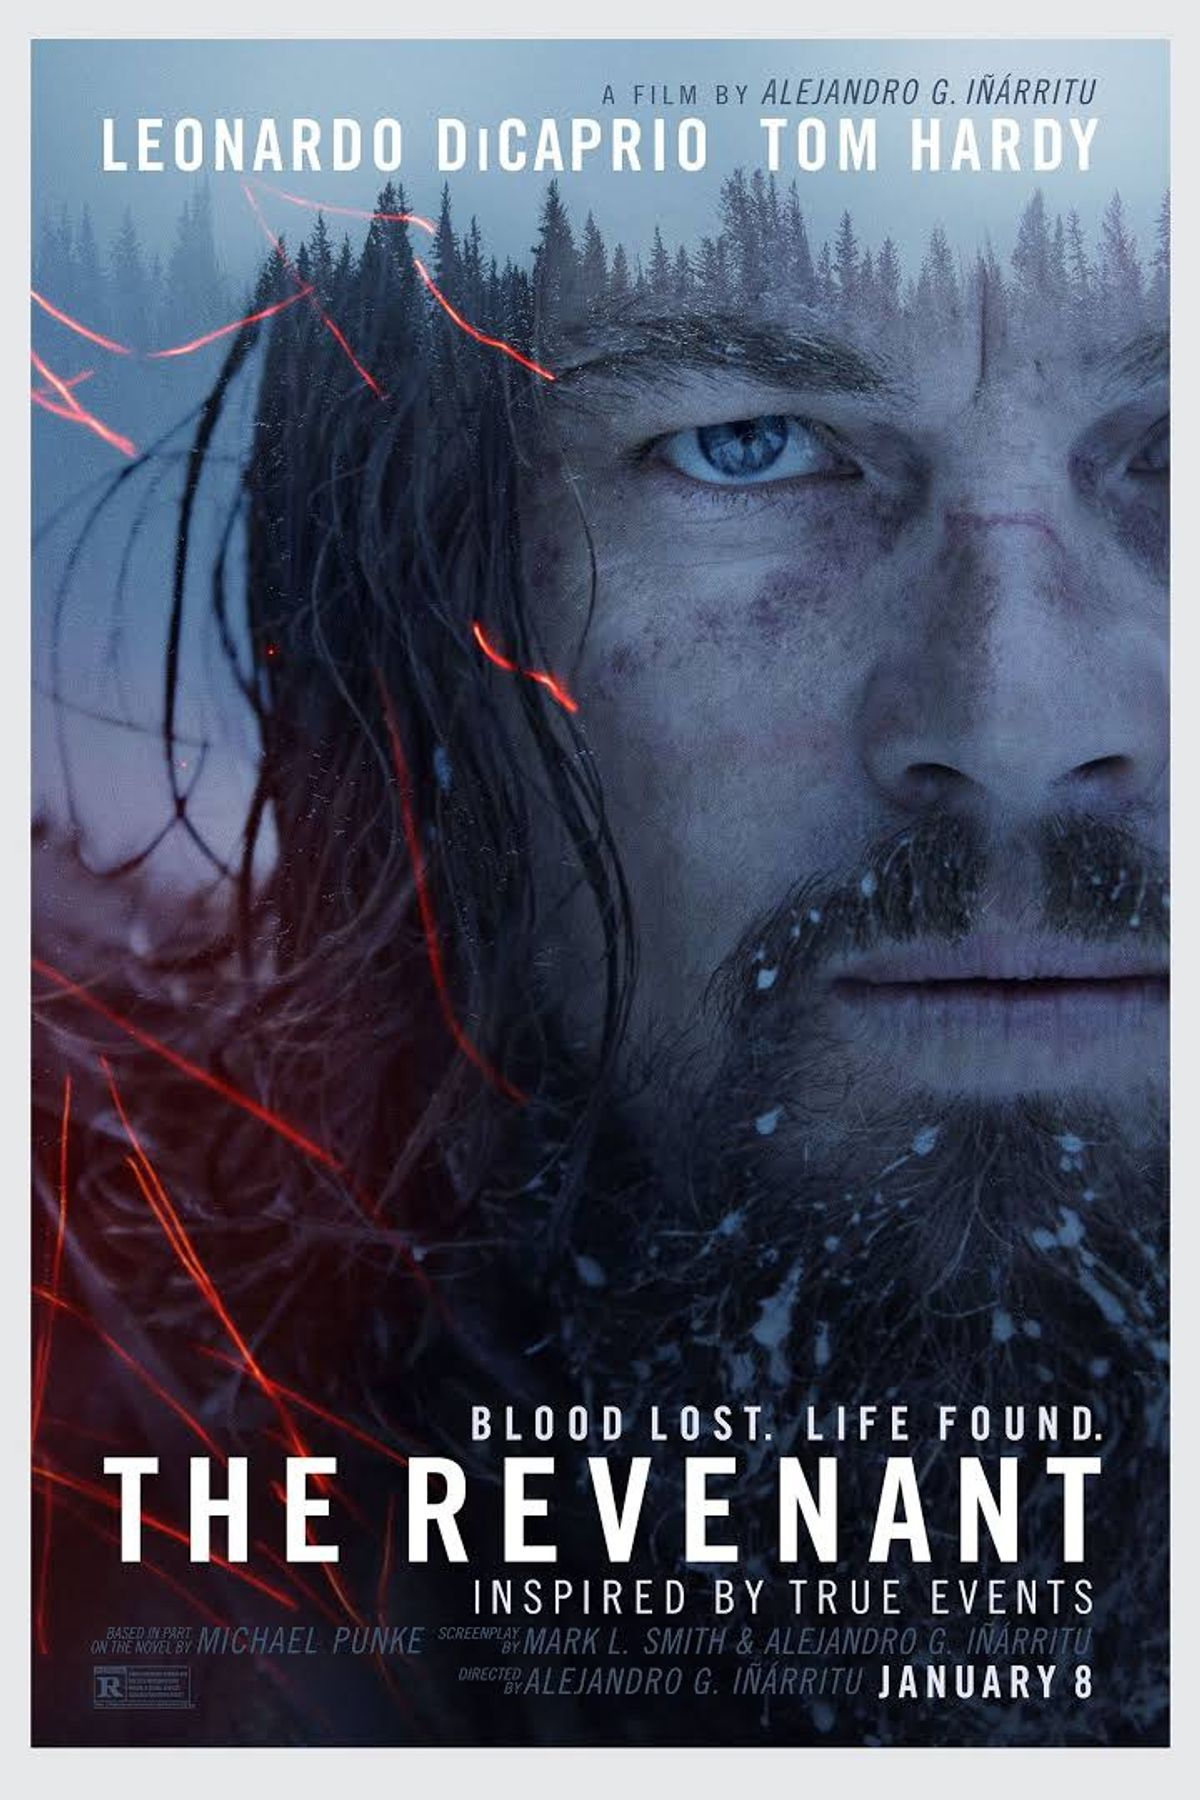 'The Revenant': More Than Just A Revenge Story